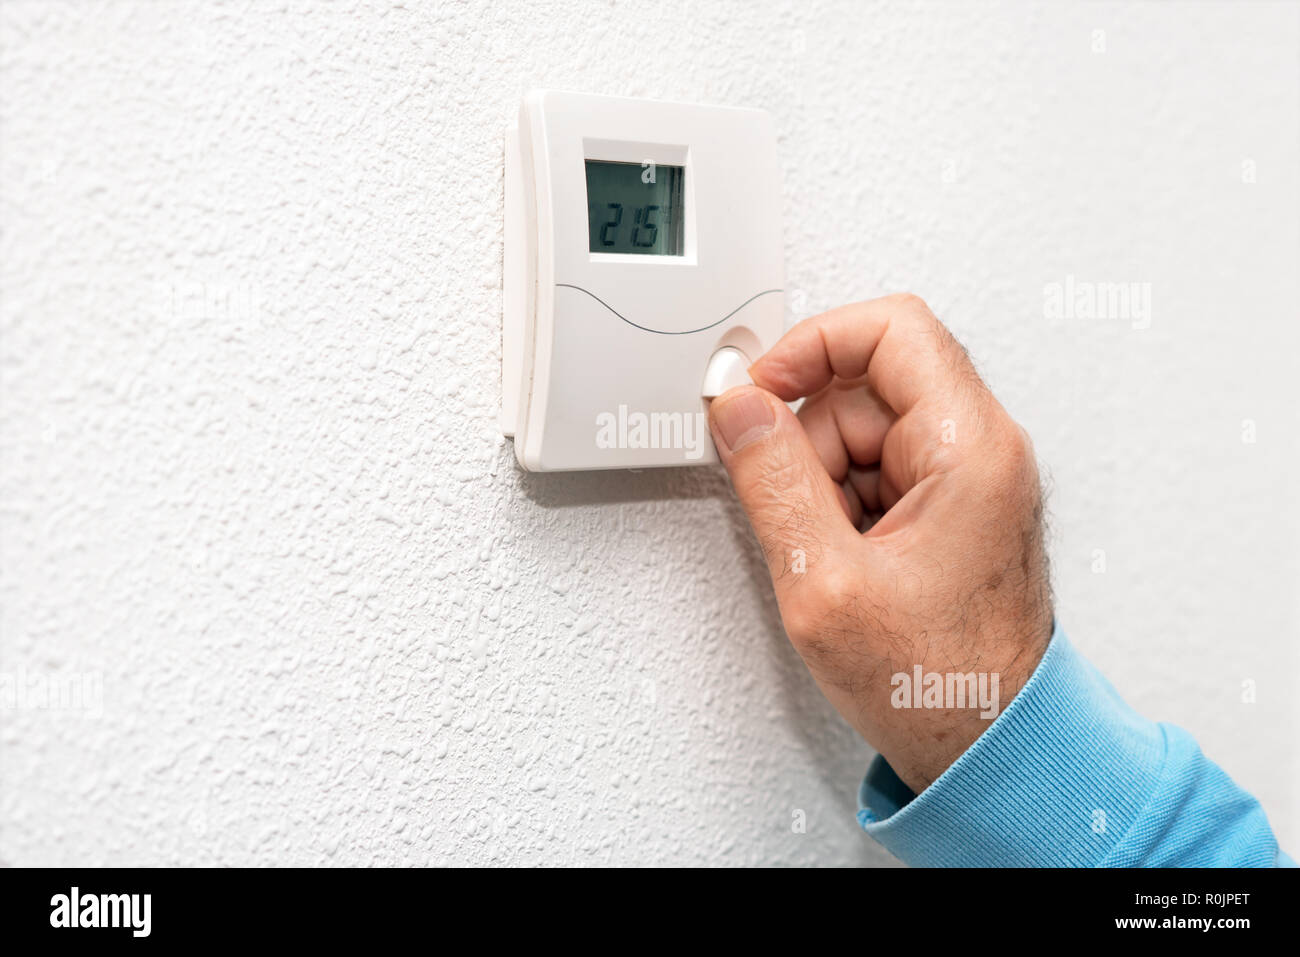 Man hand adjusting thermostat at home. Celsius temperature scale. - Stock Image